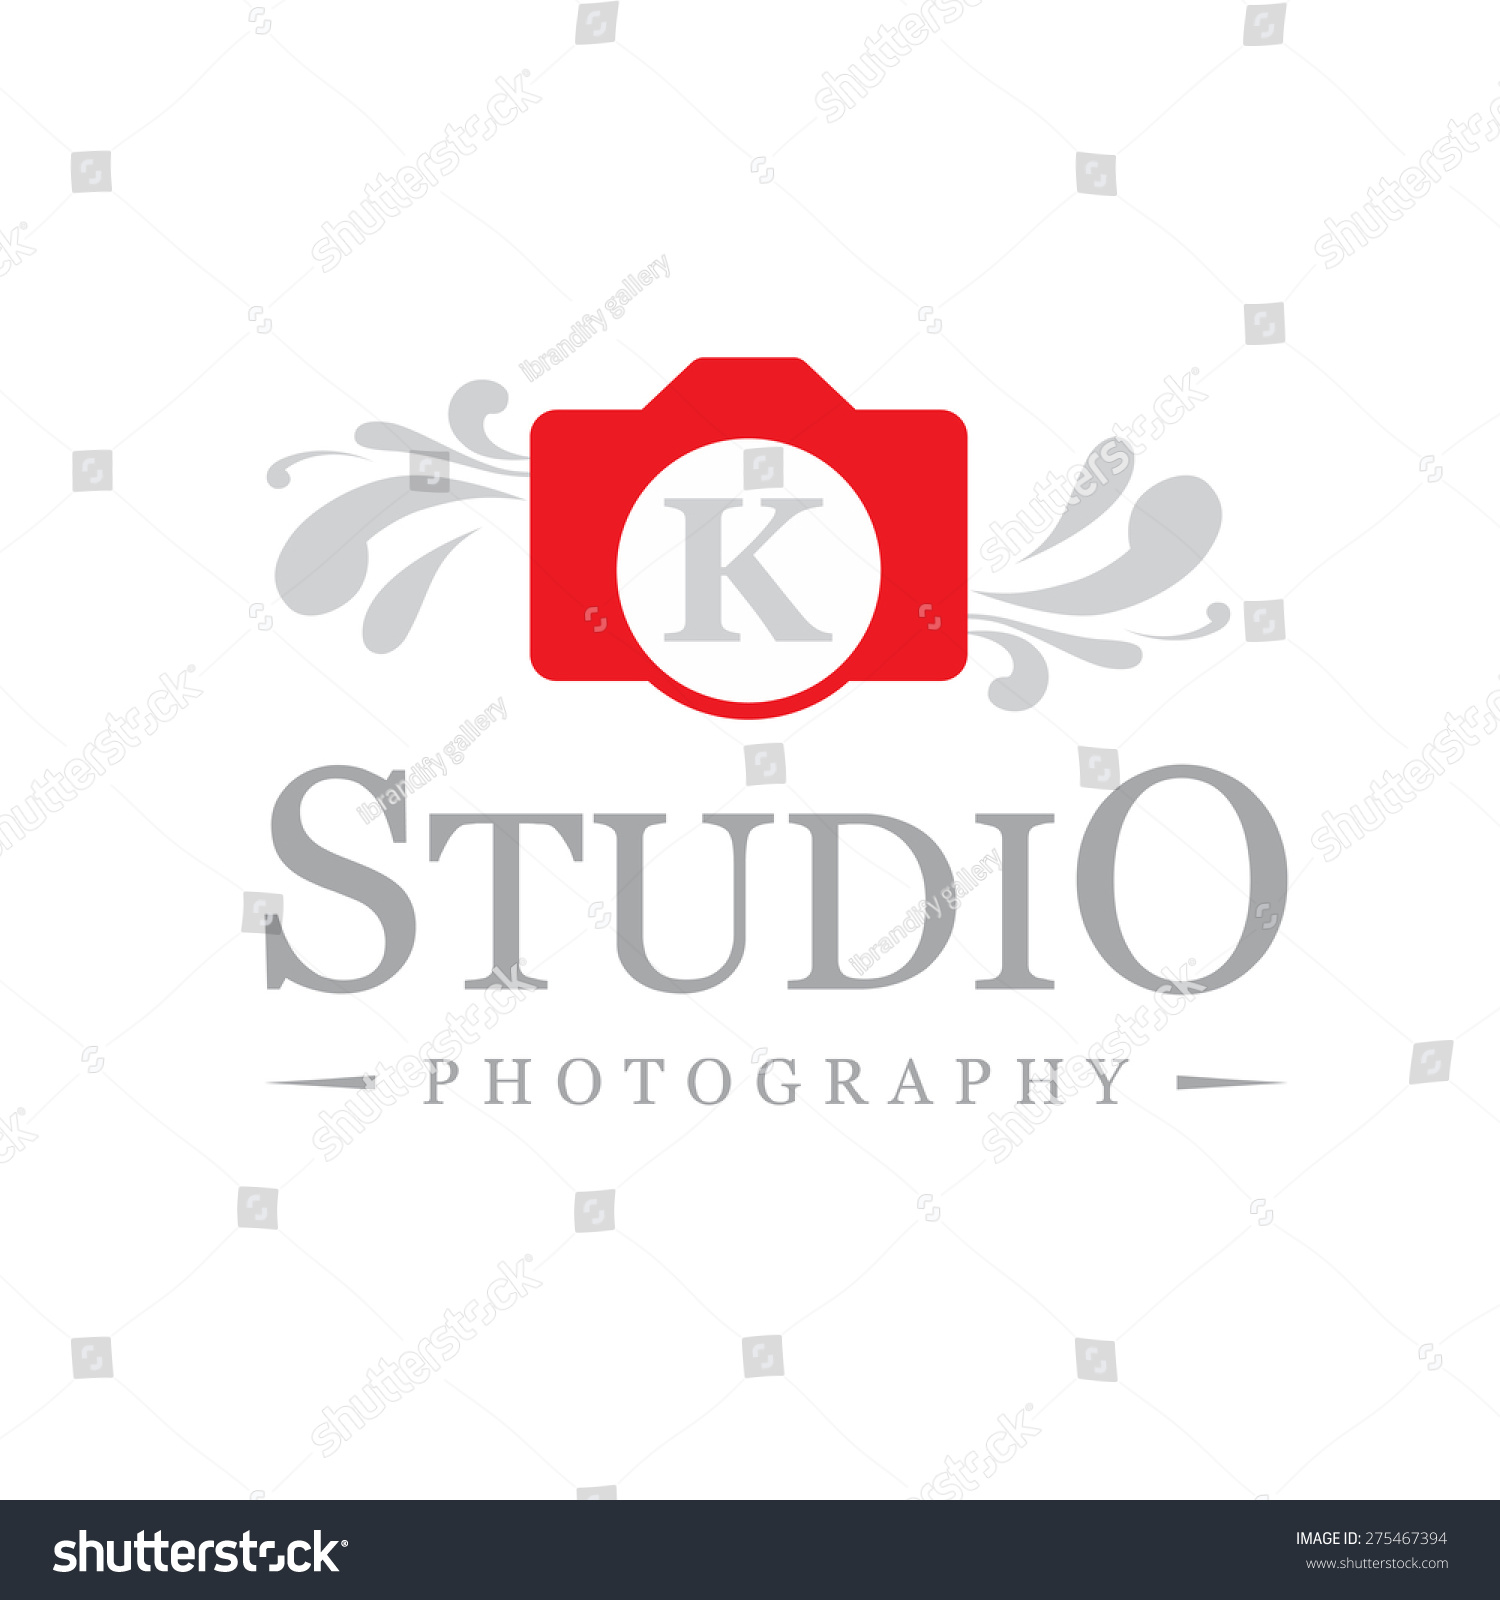 Letter K Logo Creative Red Camera Stock Vector Royalty Free